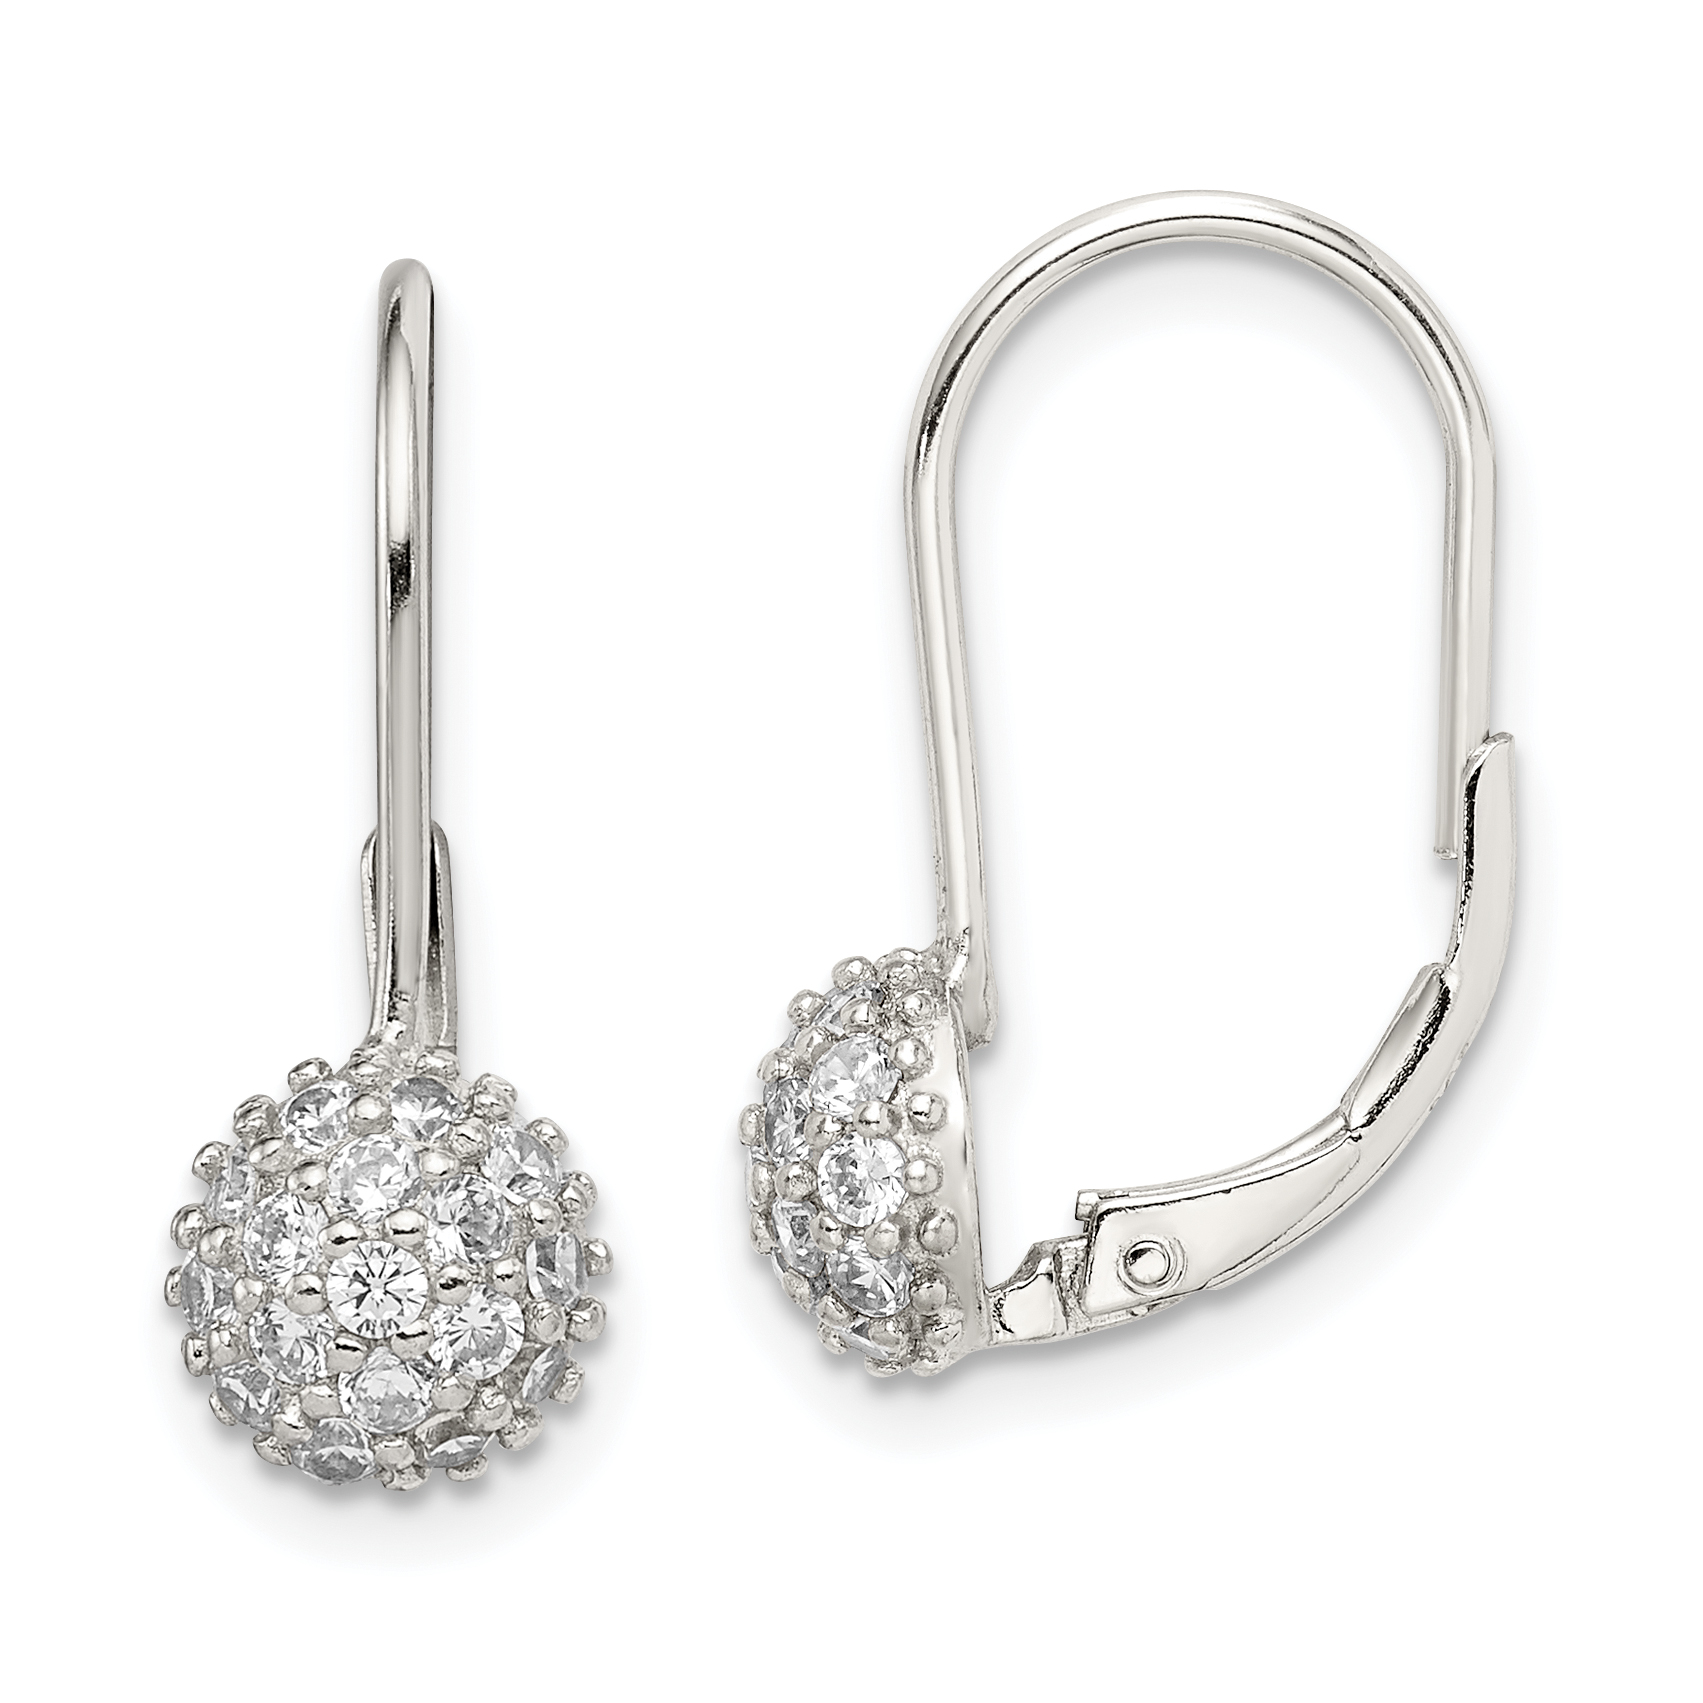 Sterling Silver Cz Leverback Earrings Weight 1 98 Grams Length 24mm Width 15mm